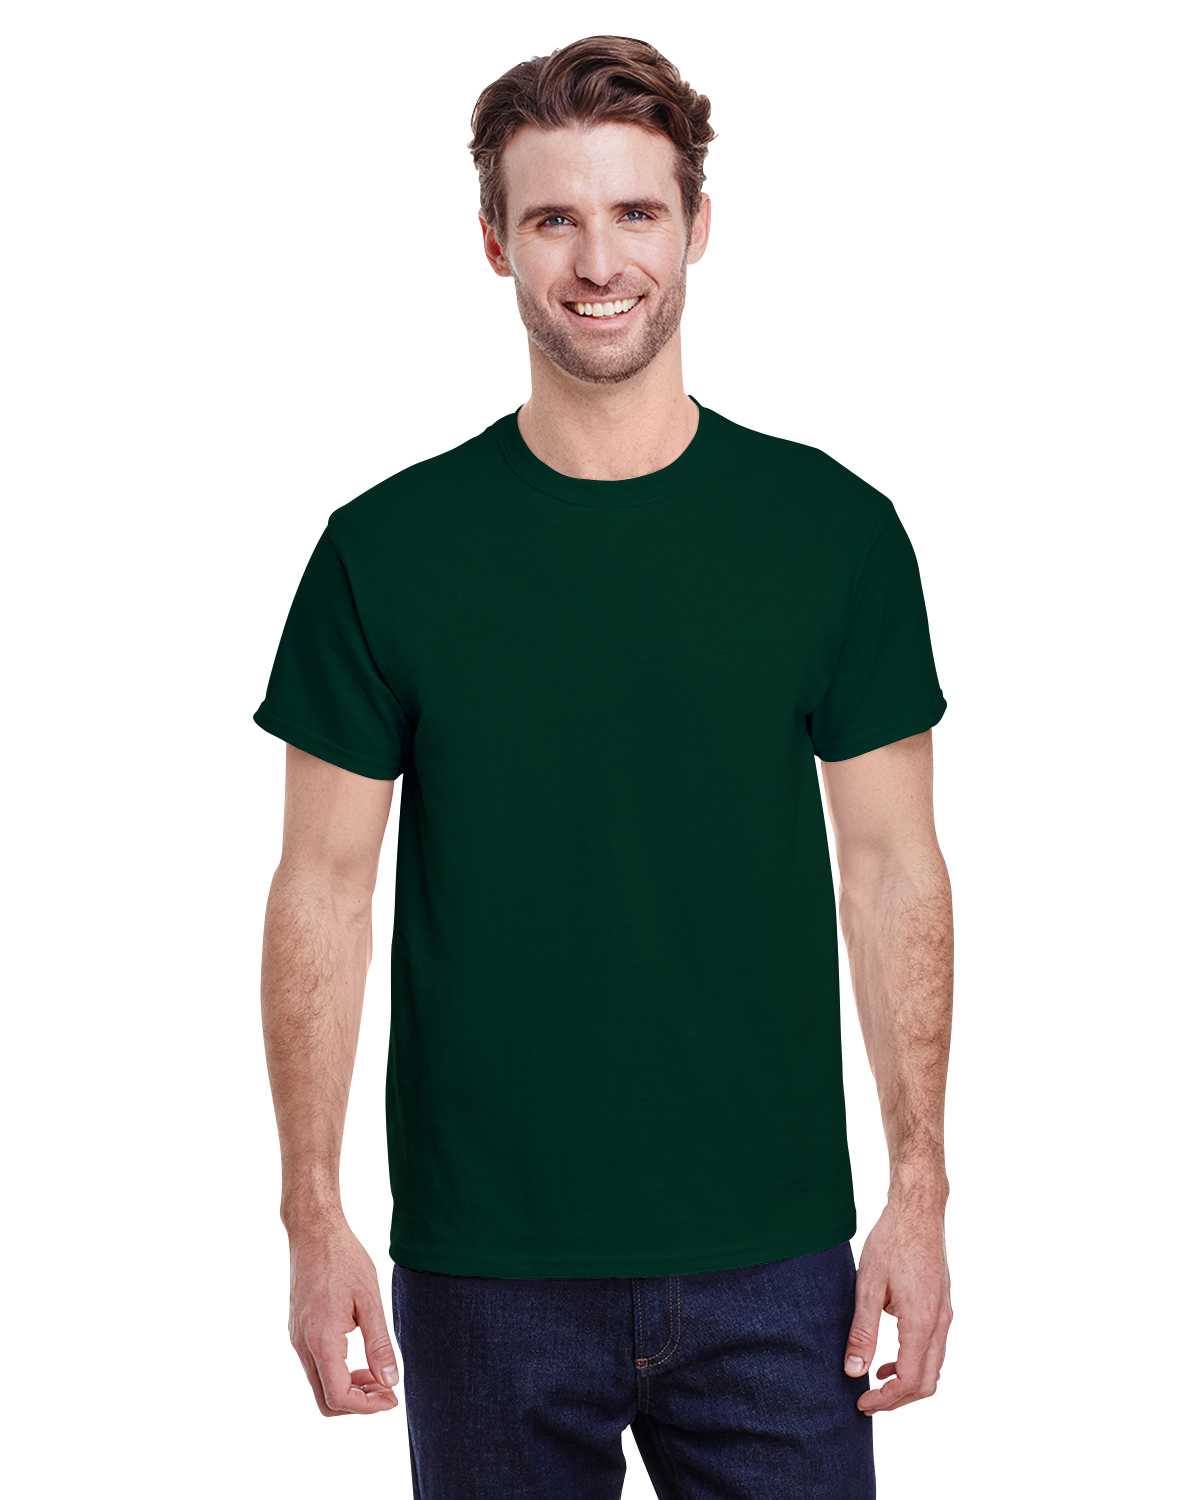 G500 Gildan Adult Heavy Cotton™ 8.8 oz./lin. yd. T-Shirt